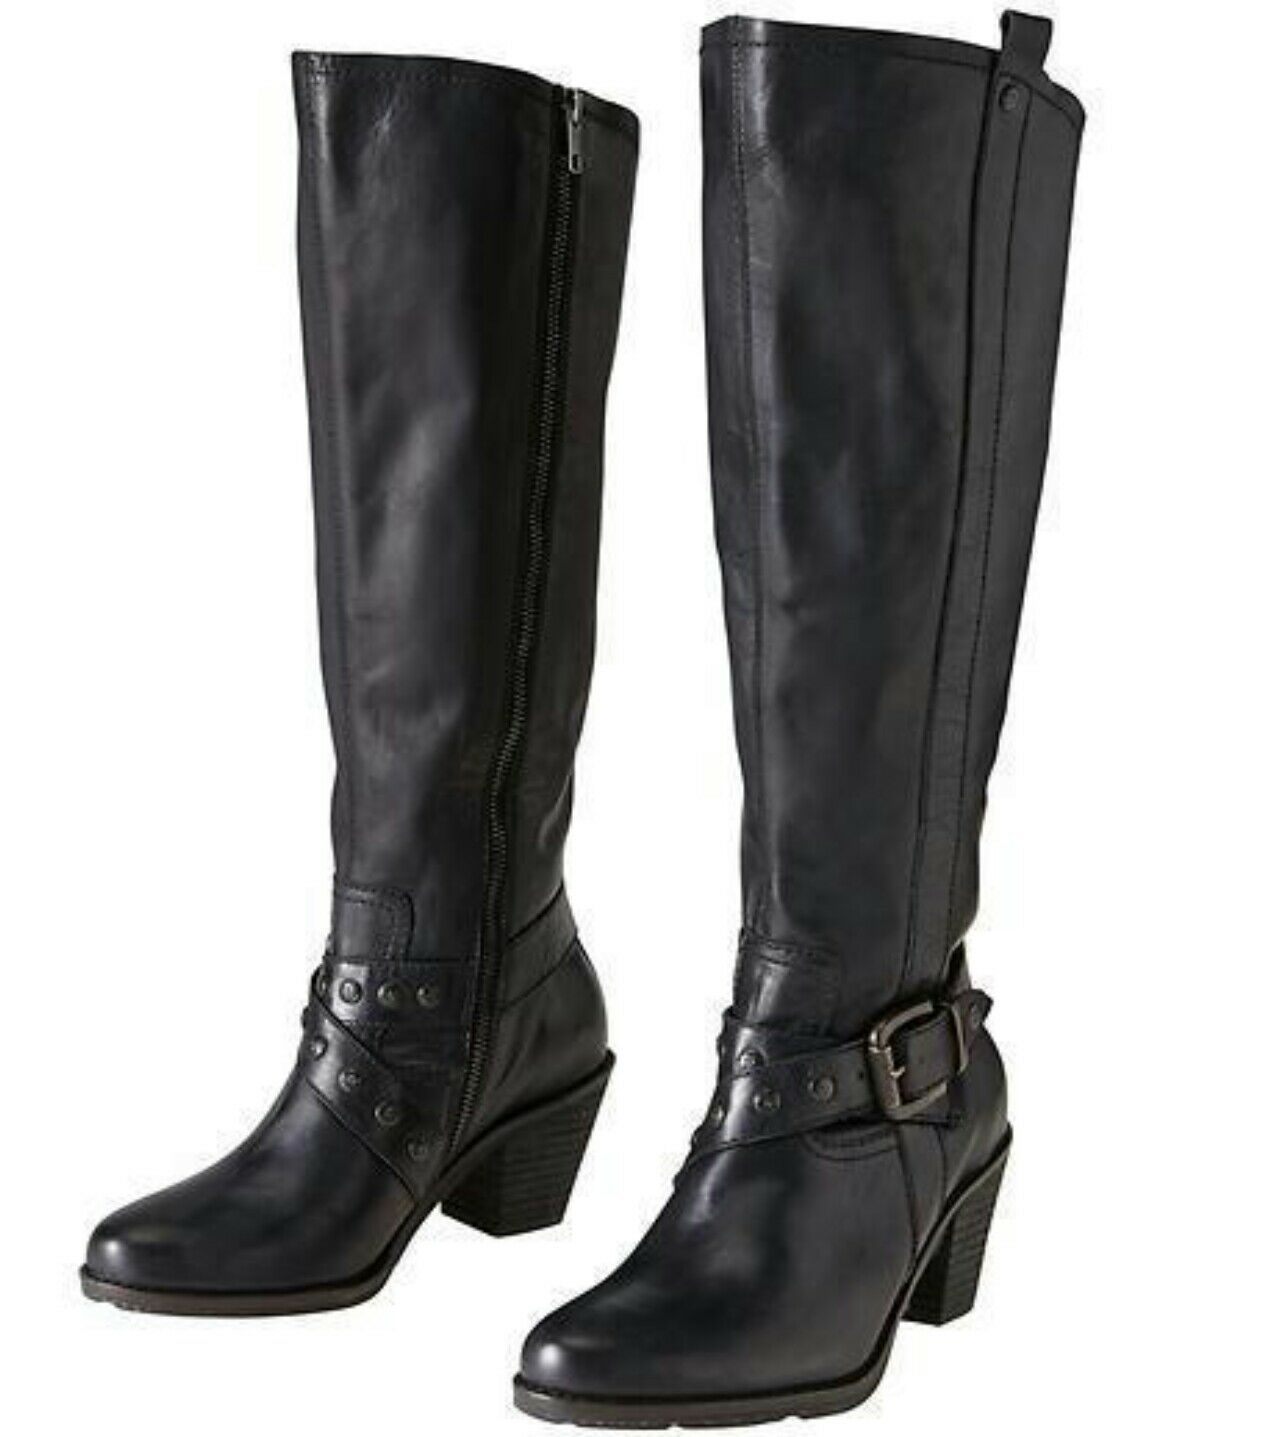 Athleta OTBT Brule Boot by Off The Beaten Track Sz 7.5 Black